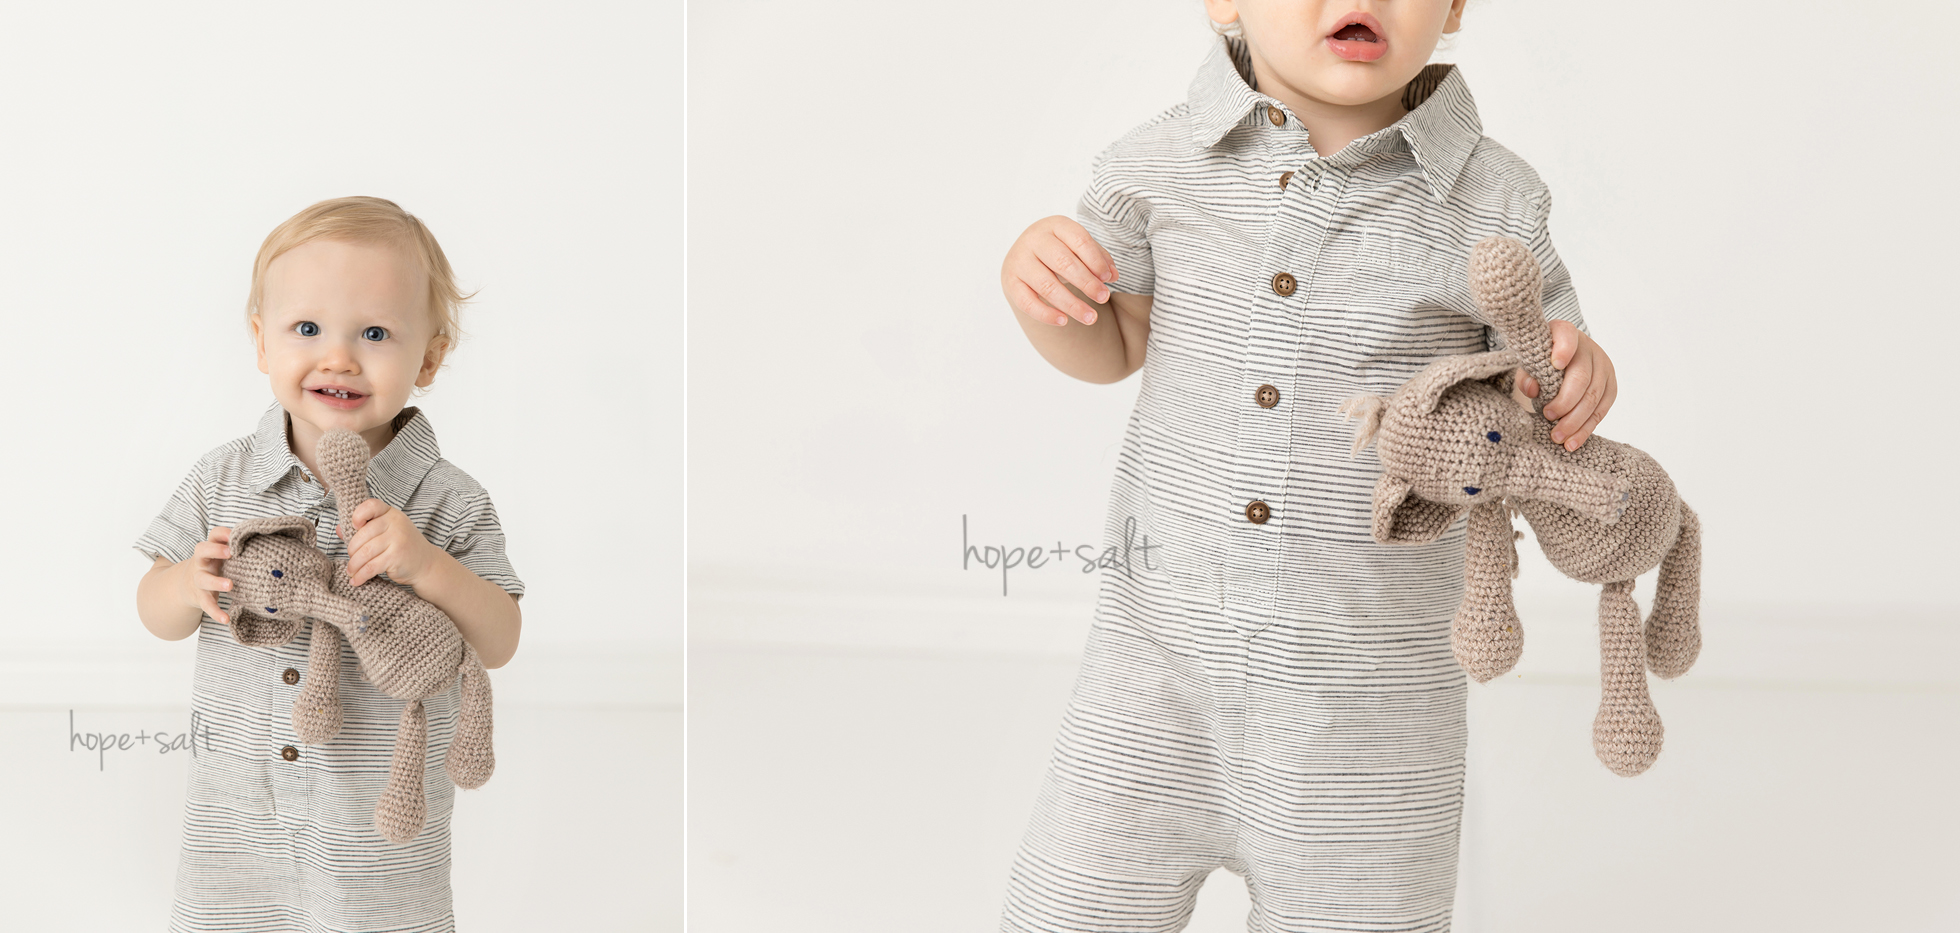 first birthday studio session for one year old boy Braden in candid natural all whites style by Burlington baby Photographer hope and salt including his elephant stuffed animal lovie